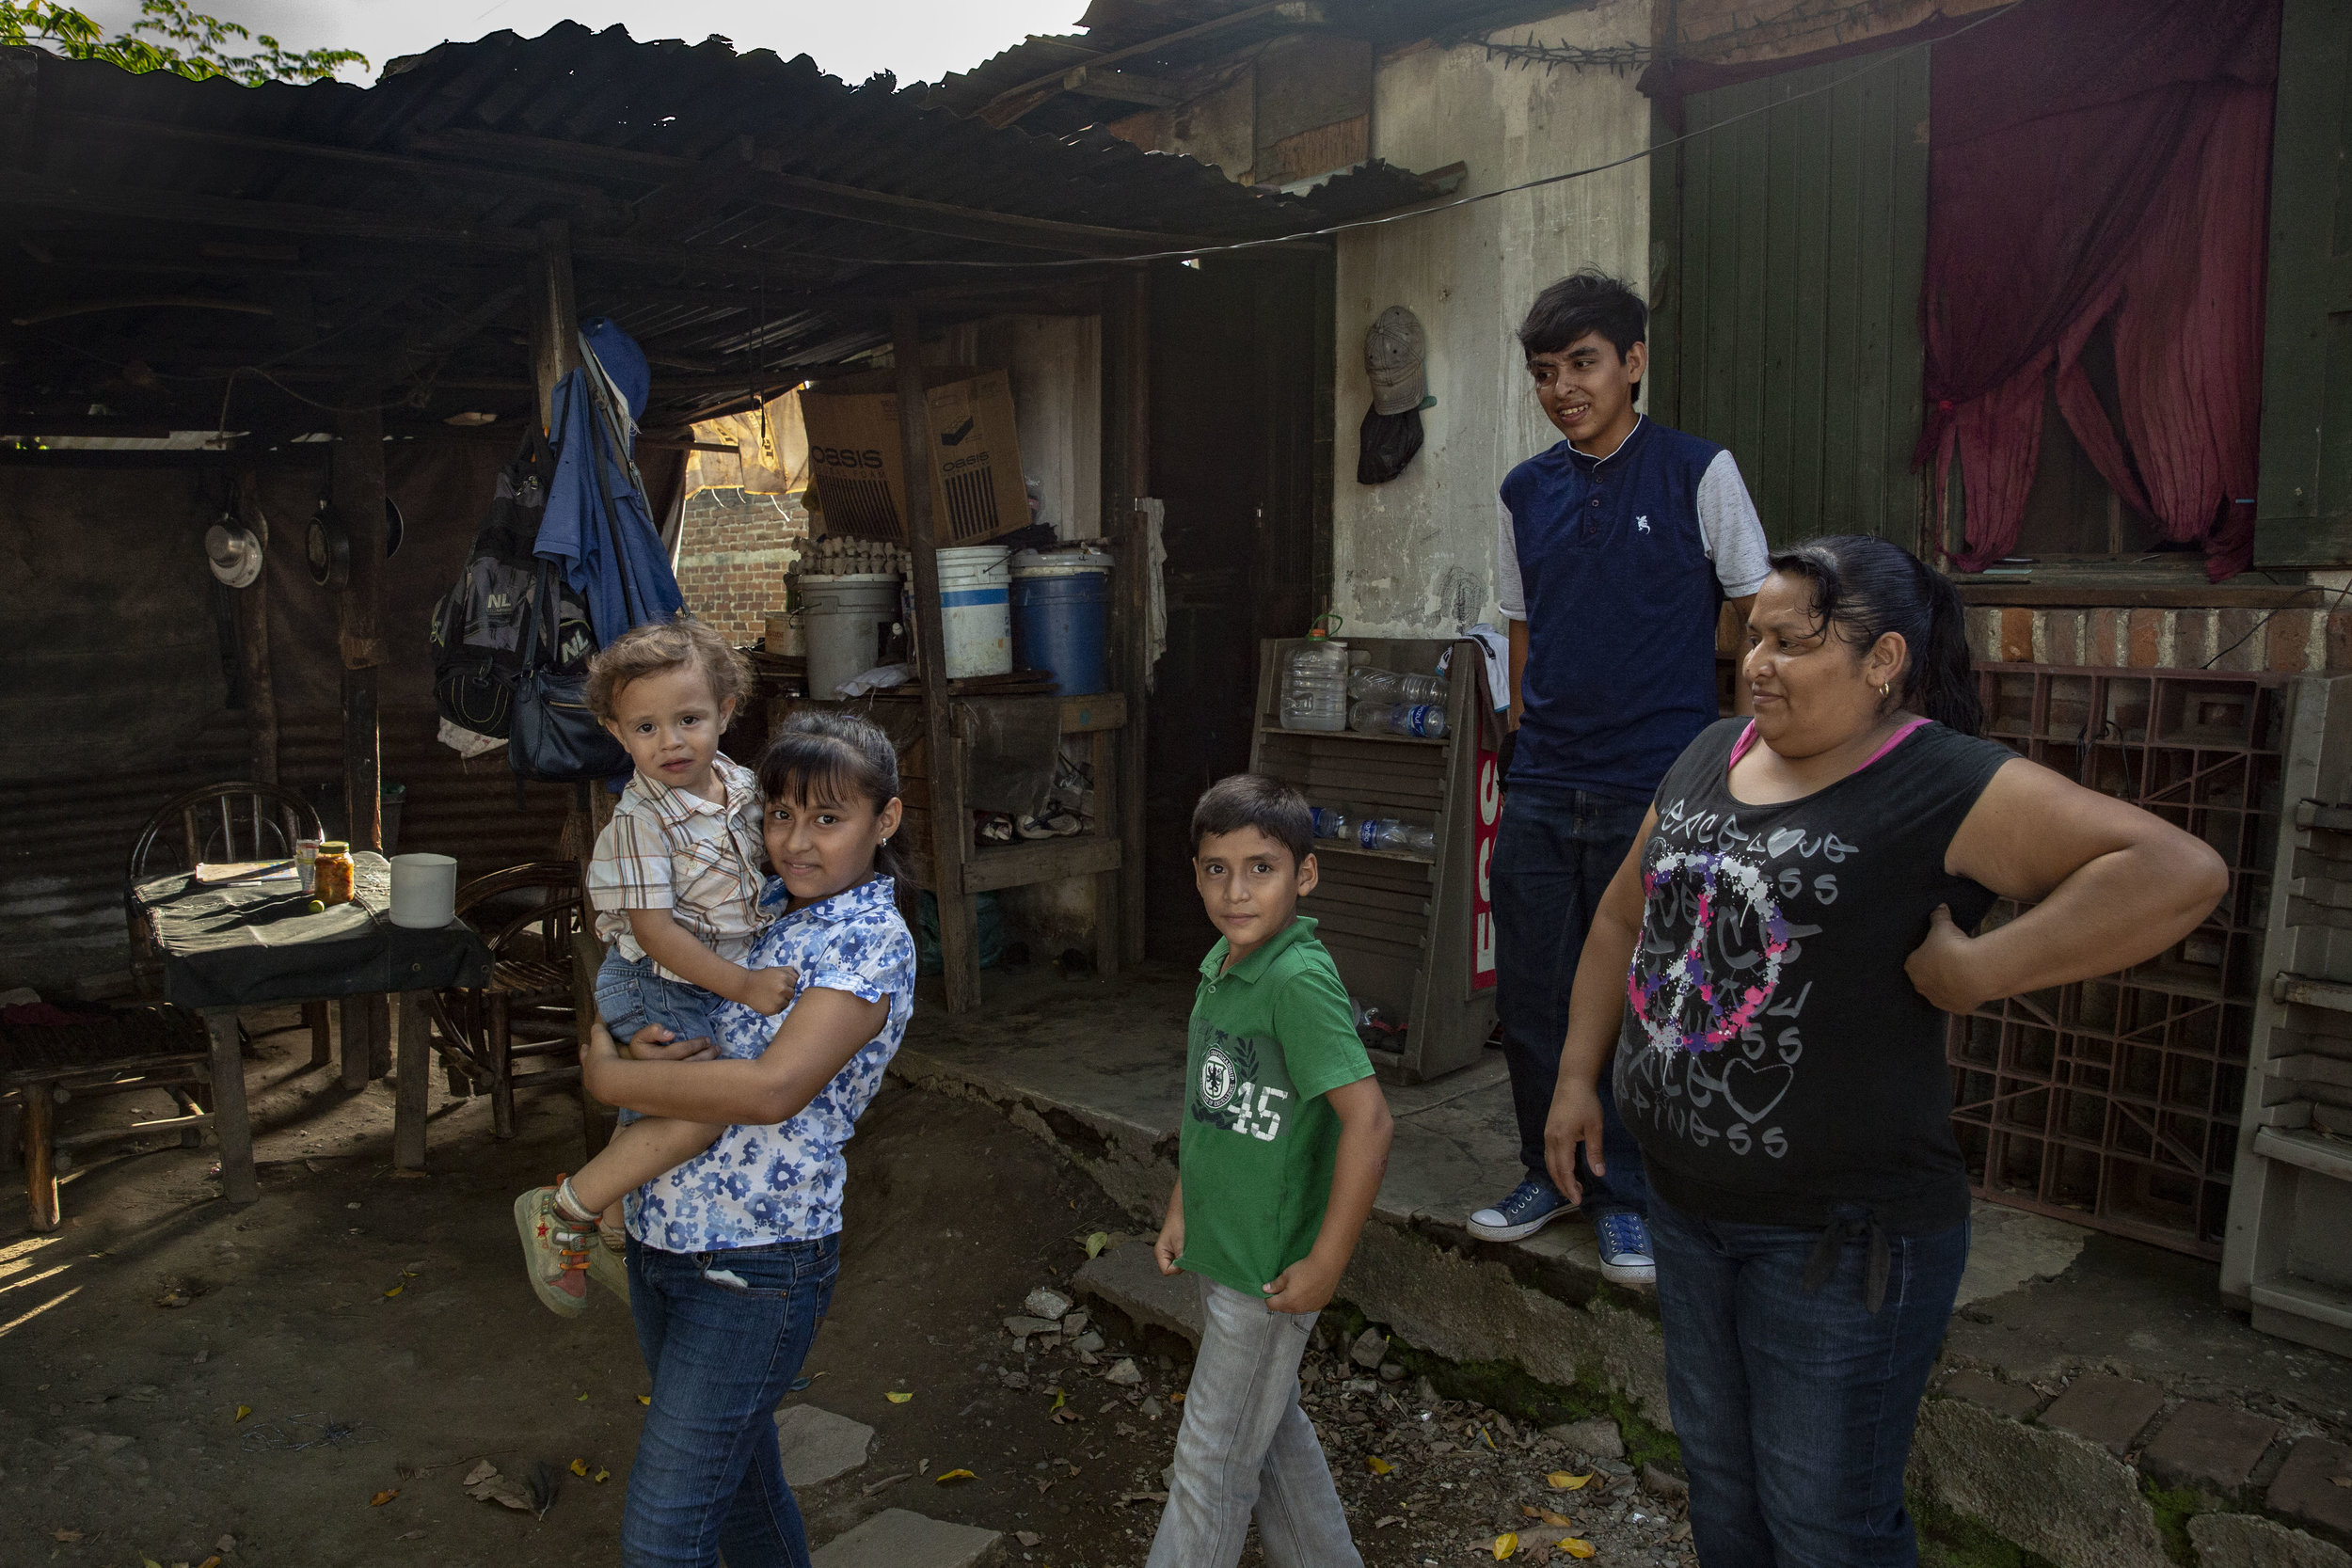 The family of Christian and Alexandra Velasquez, brother and sister who had several surgical operations after an car accident in 2012. They live in San Pedro Sula, Honduras and they recevied extensive help from the Ruth Paz fundation.